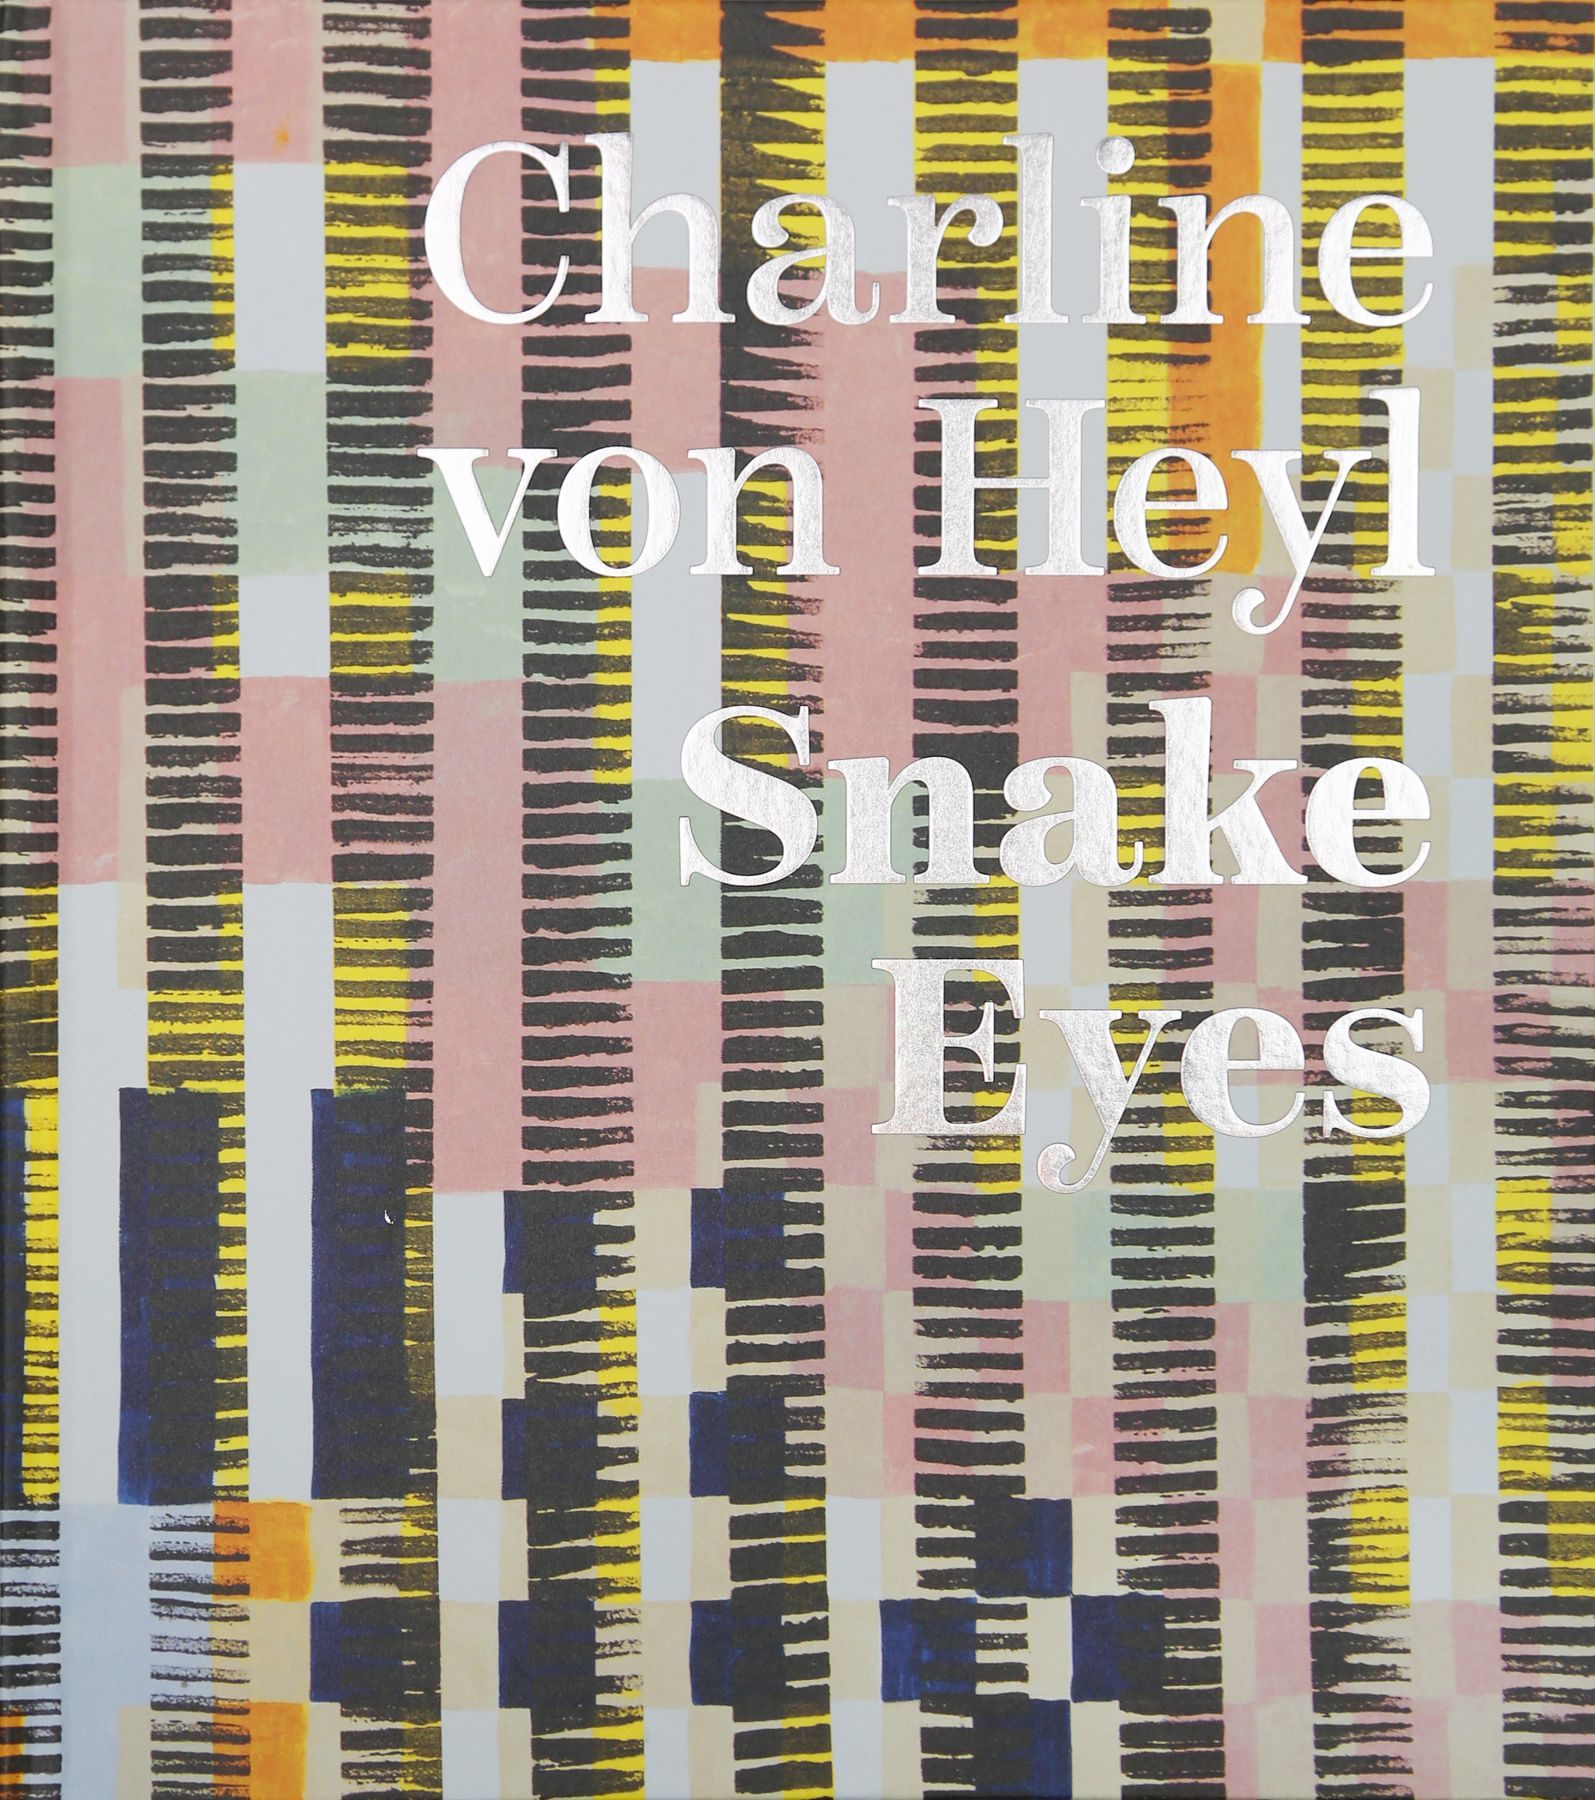 Charline von Heyl: Snake Eyes , Koening Books, 2018